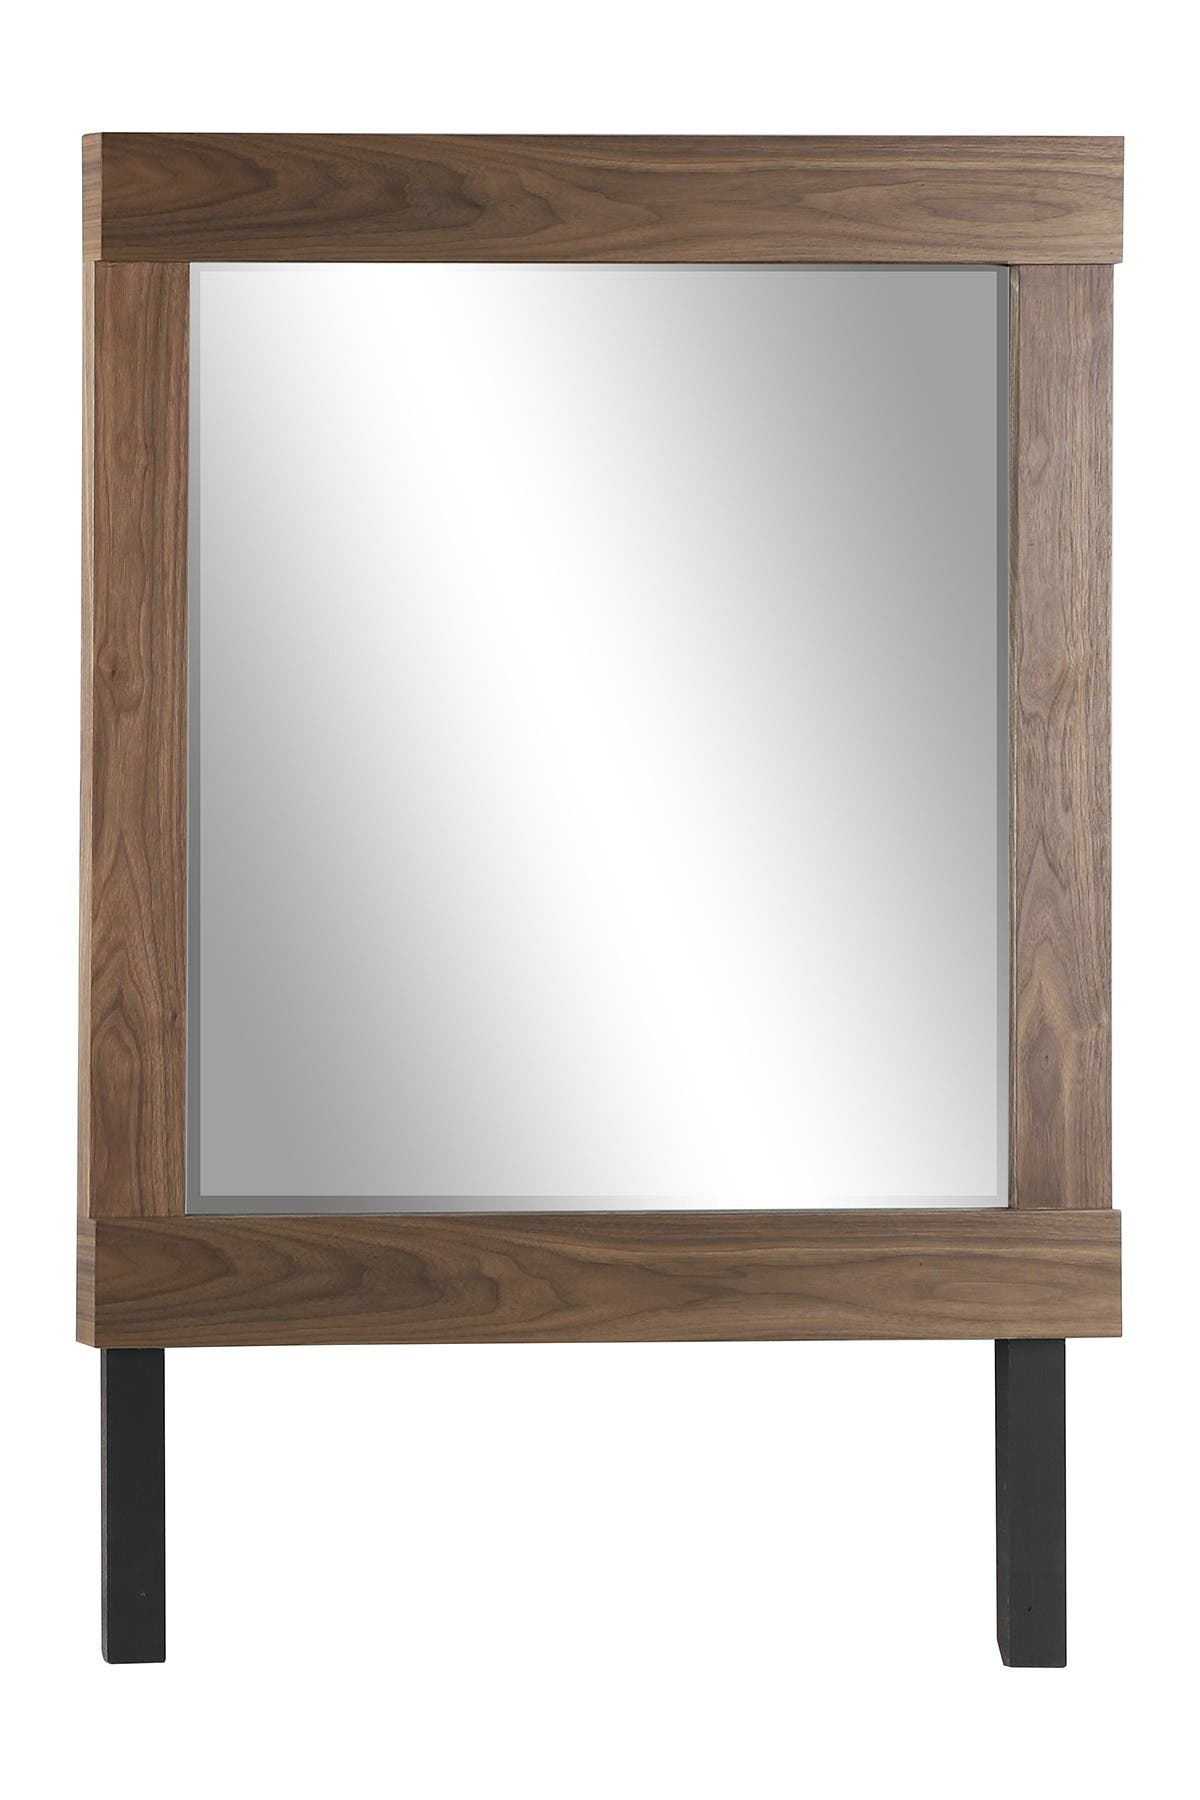 Venus Williams Collection Contemporary Large Square Natural Wood Dresser Mirror Nordstrom Rack